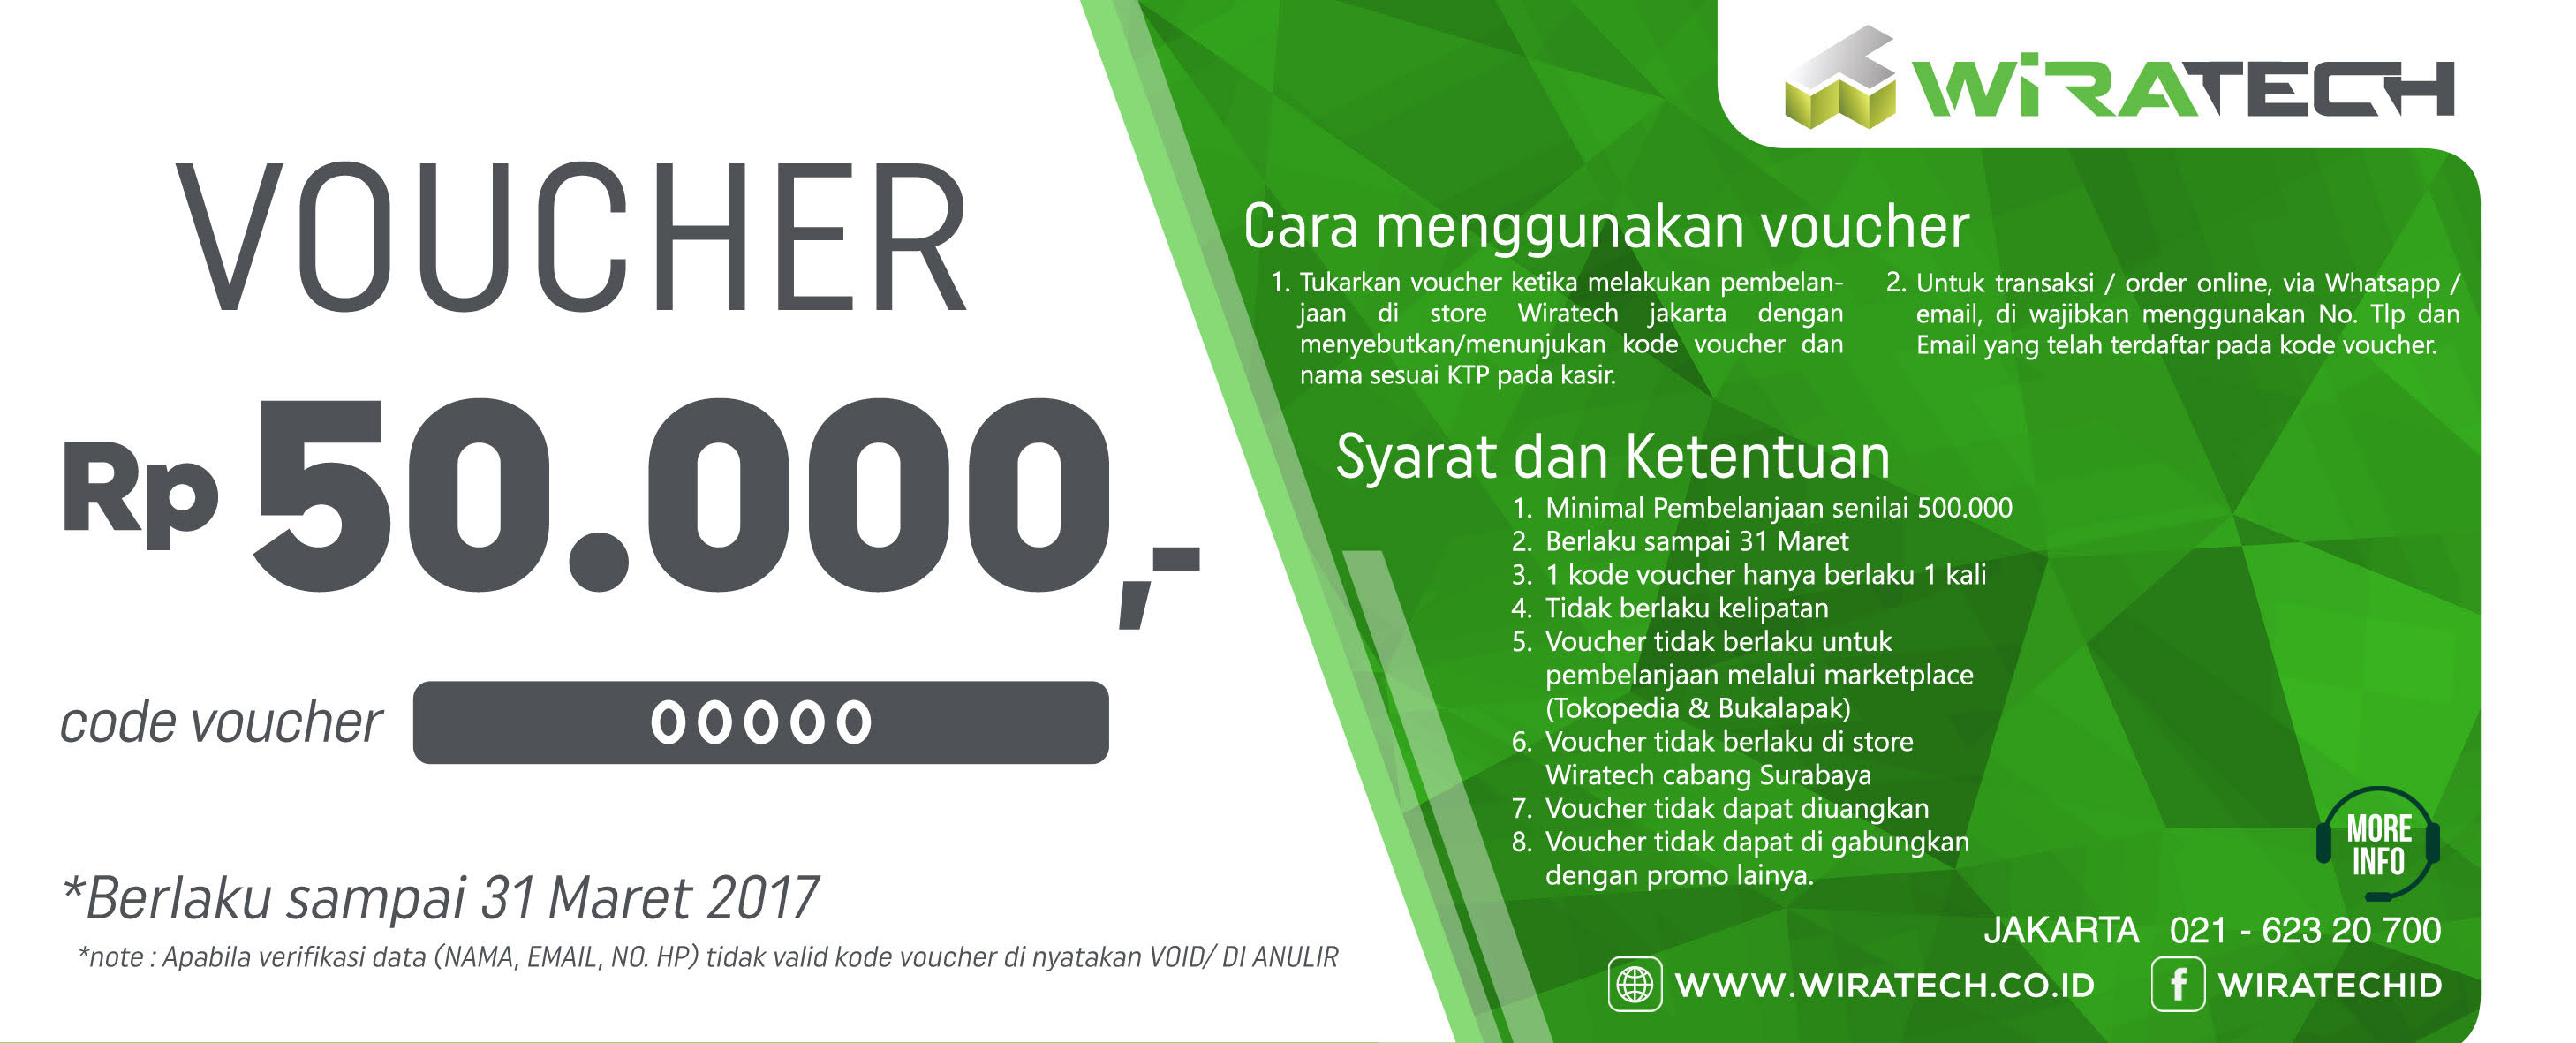 voucher Promo Wiratech 50